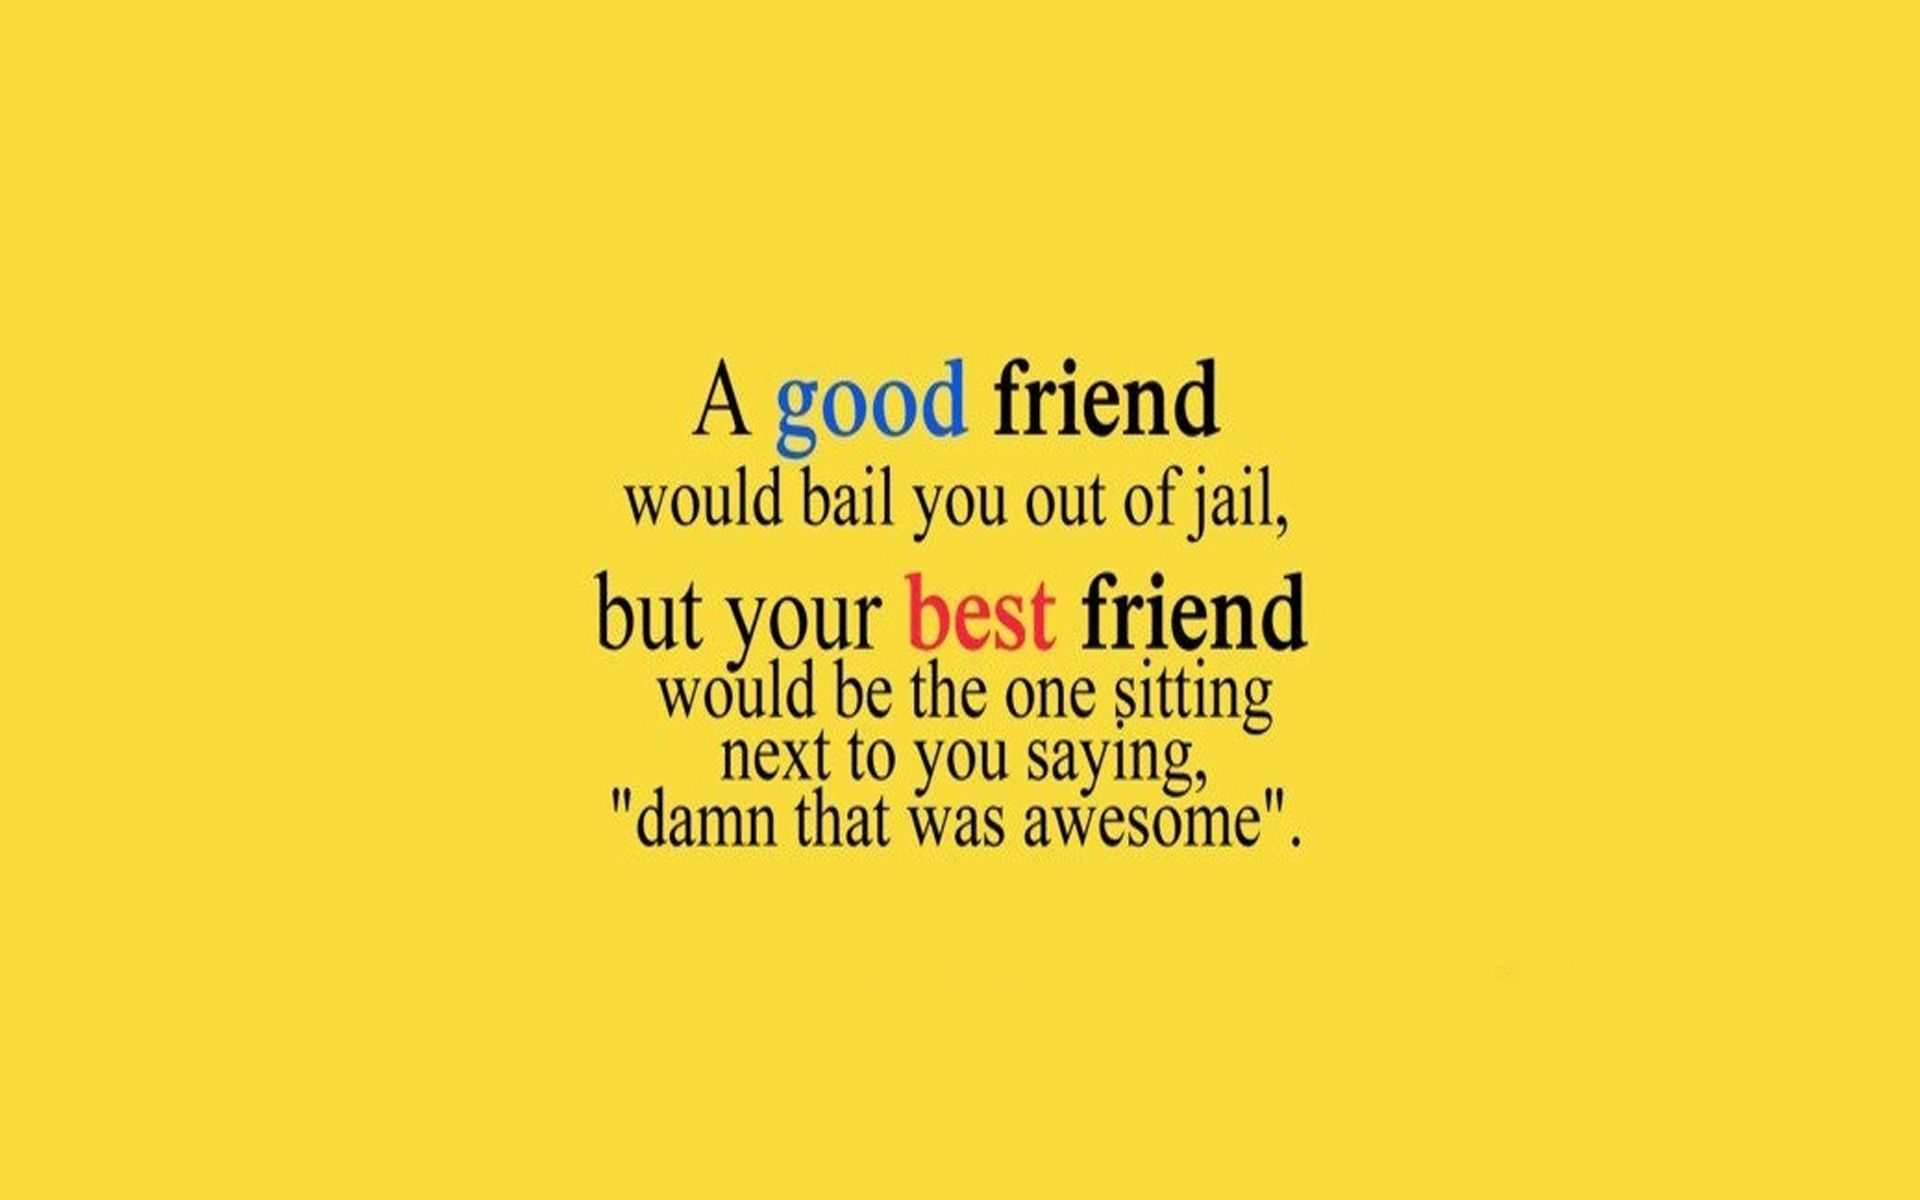 That S So True Best Friend Quotes Friendship Day Quotes Friendship Quotes